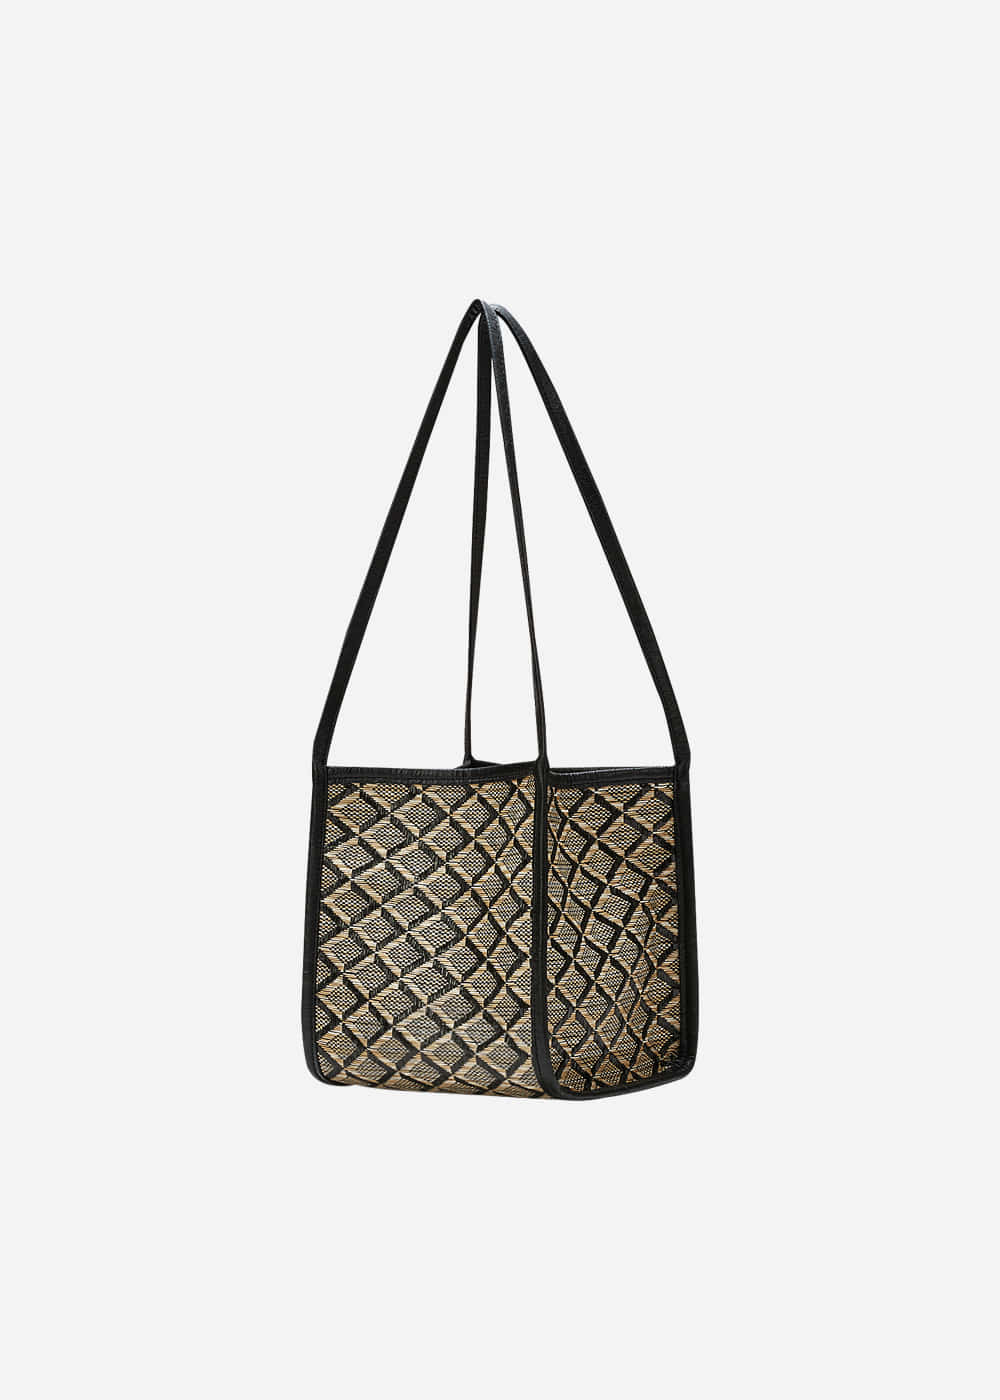 Rattan Shoulder Tote Black